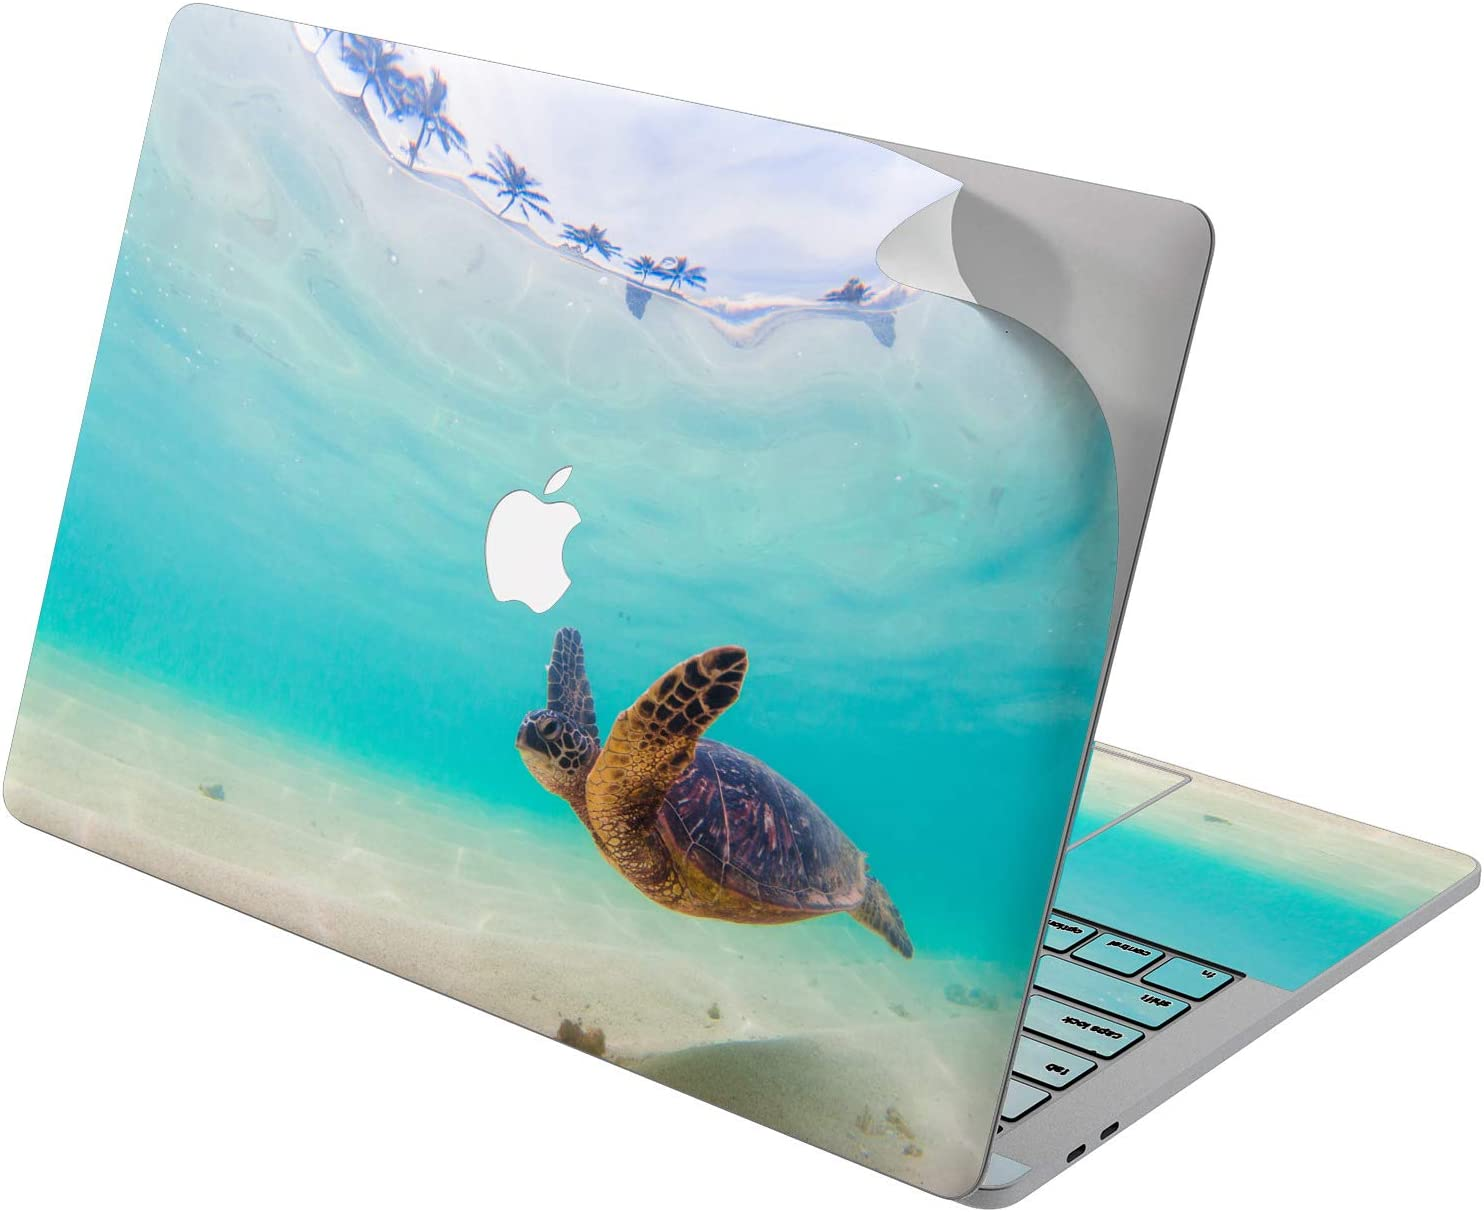 "Cavka Vinyl Decal Skin for Apple MacBook Pro 13"" 2019 15"" 2018 Air 13"" 2020 Retina 2015 Mac 11"" Mac 12"" Trendy Cover Summer Protective Sea Ocean Design Cute Turtle Laptop Print Blue Sticker Swimming"